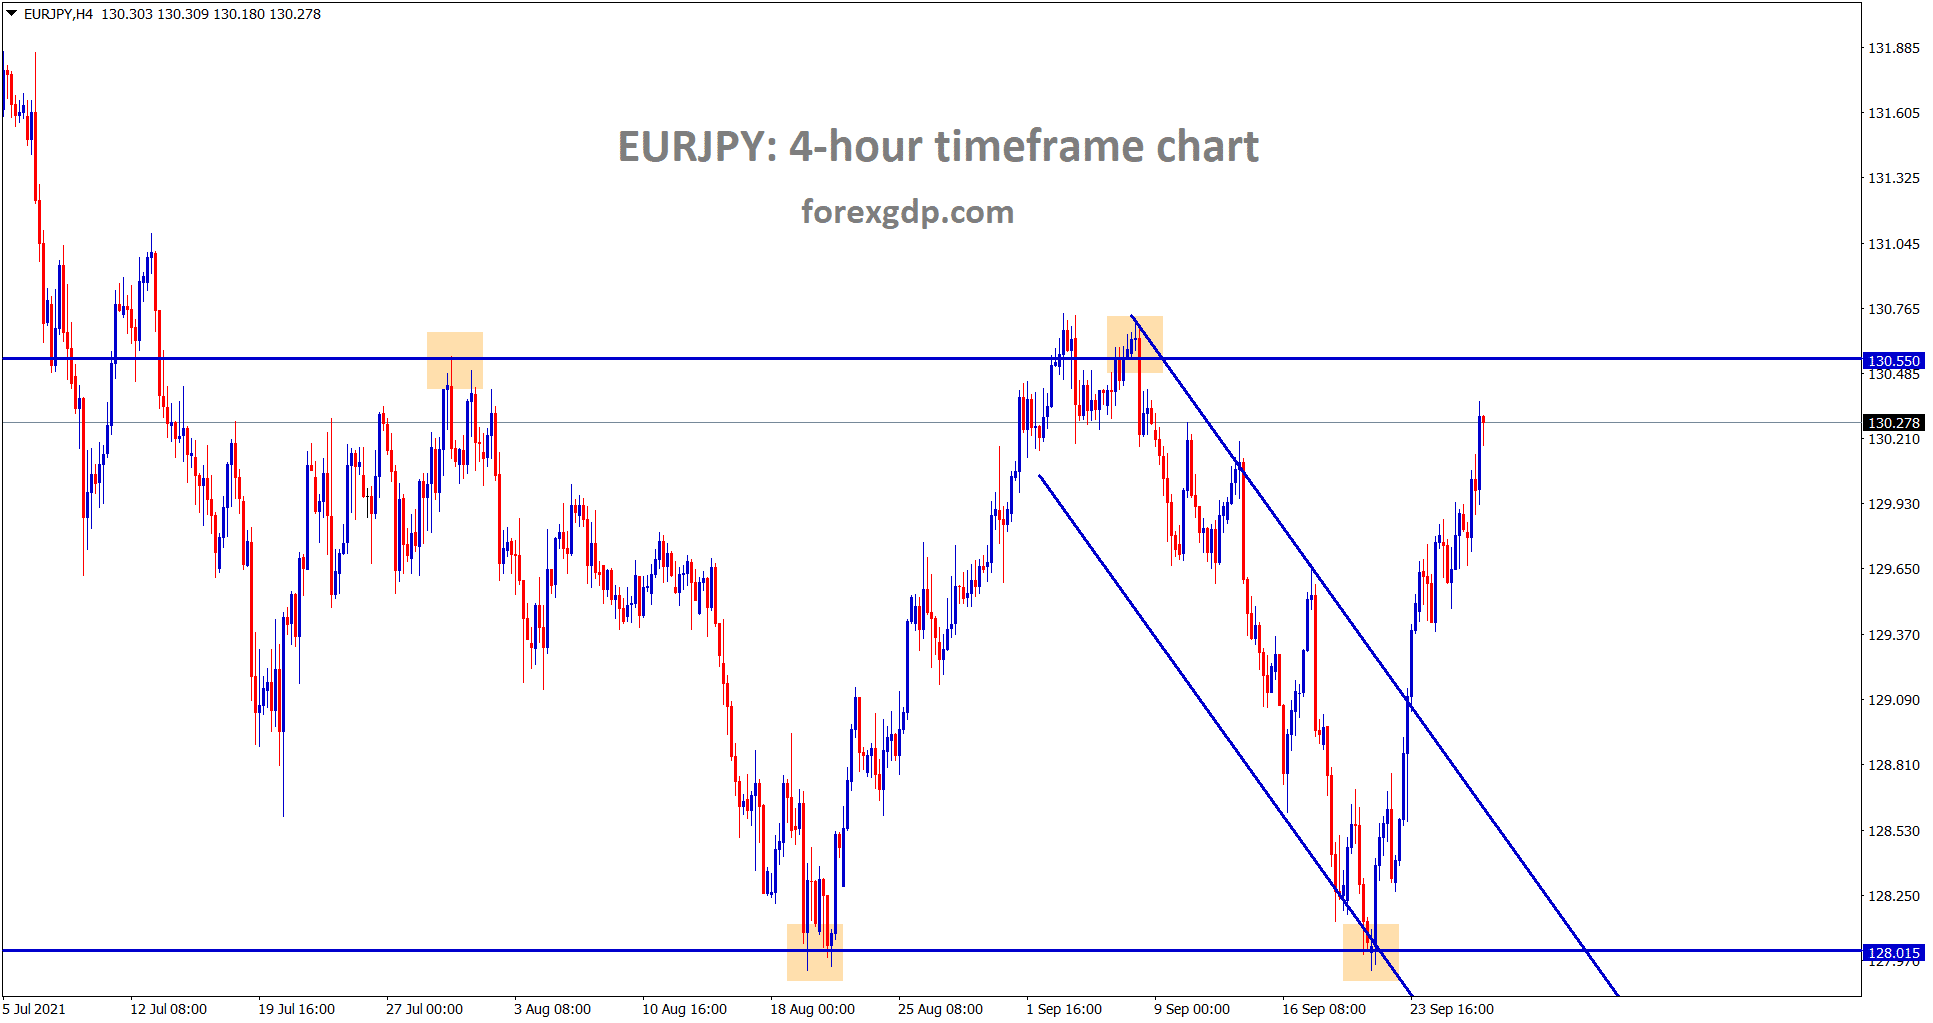 EURJPY is moving up continuously after breaking the descending channel